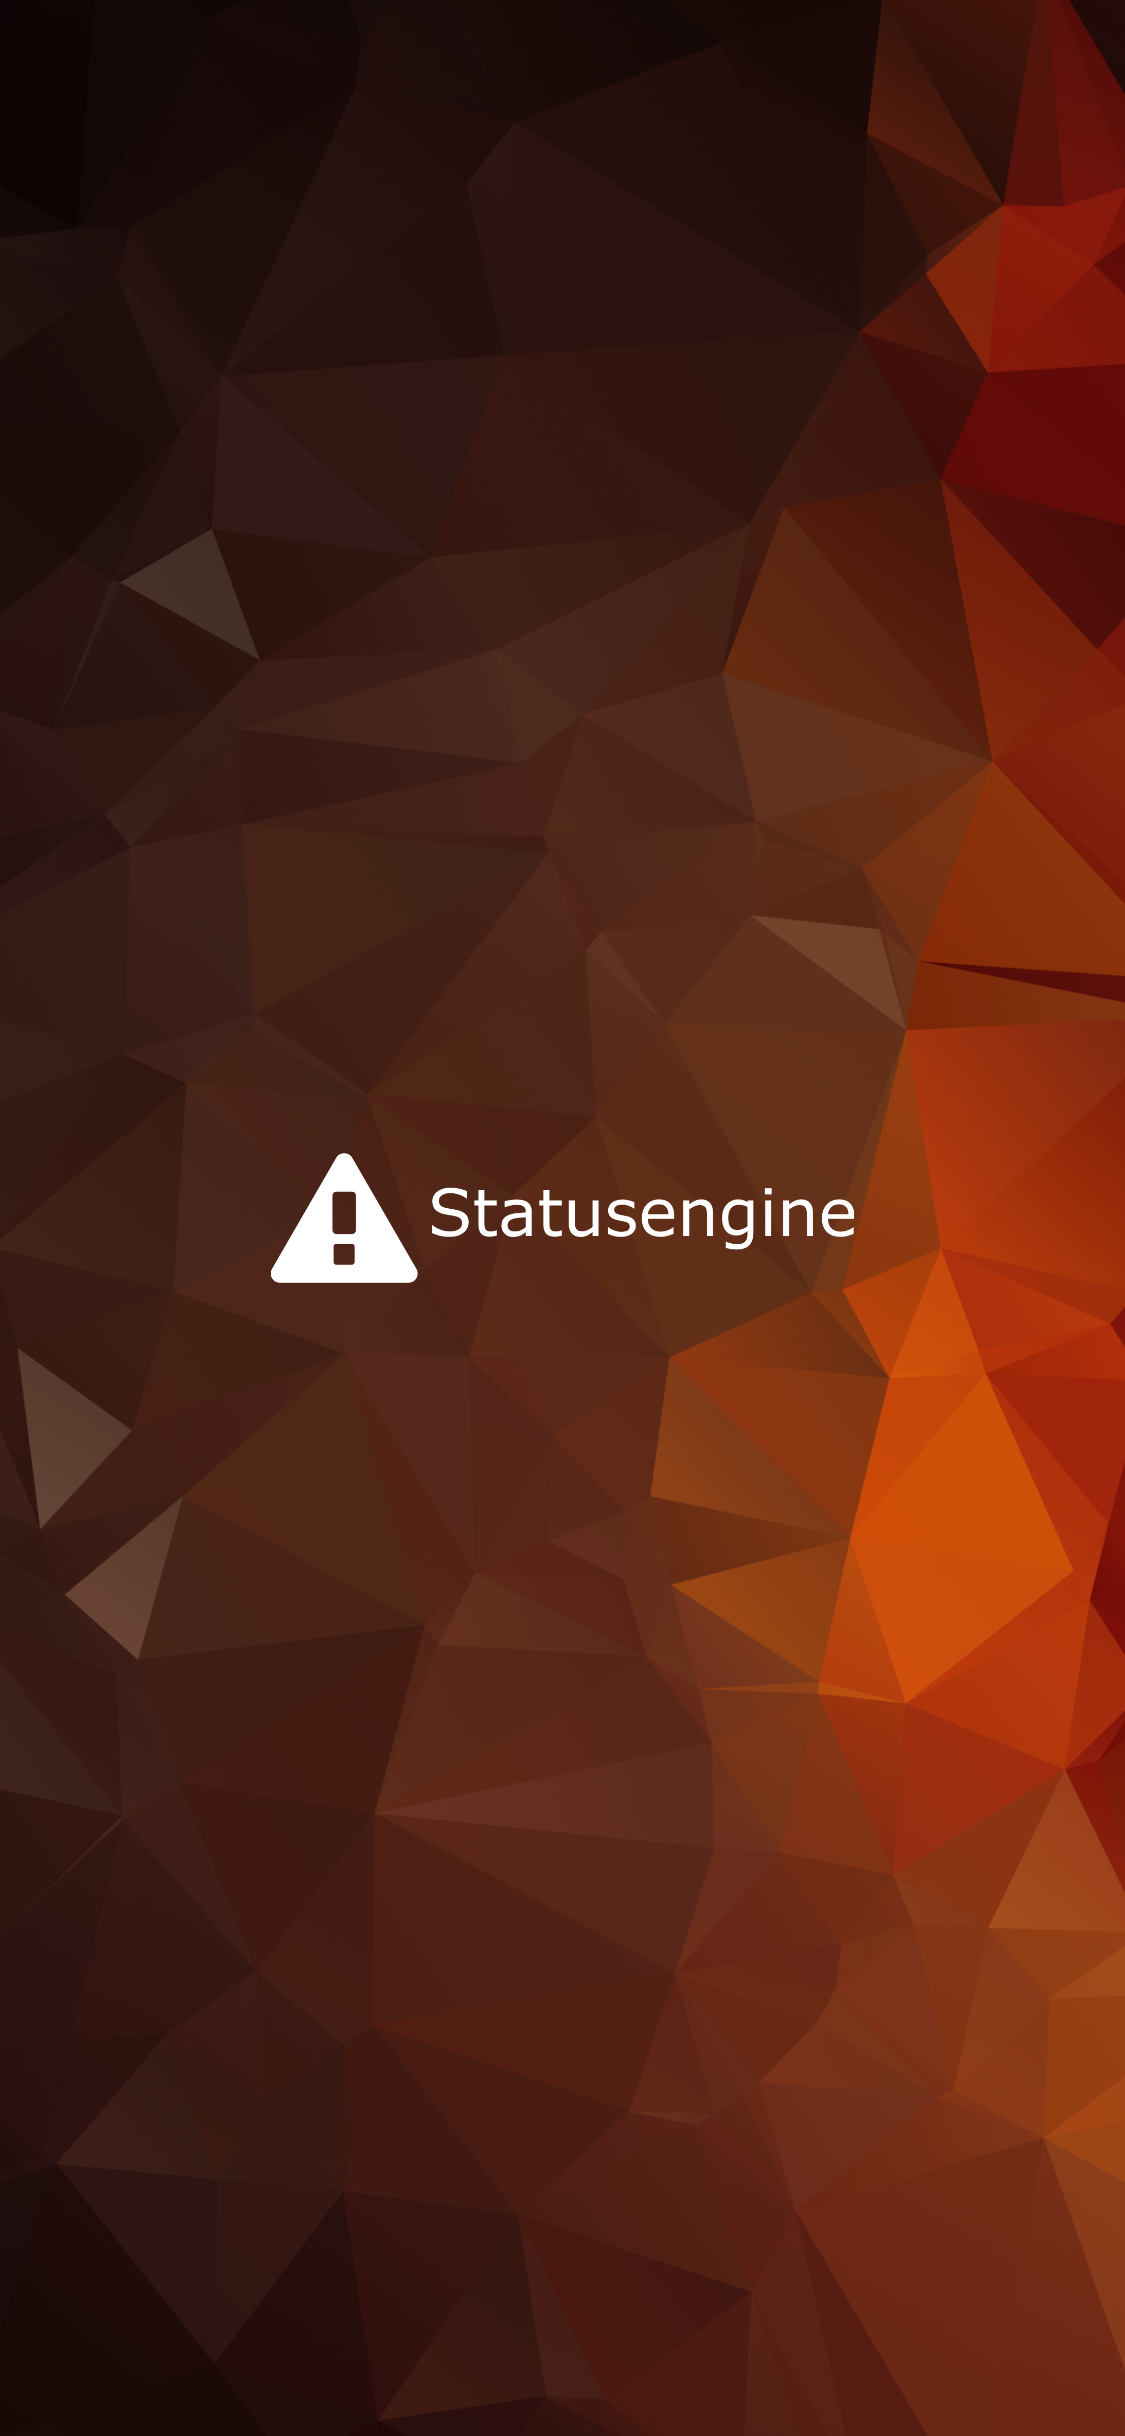 Statusengine iPhone Wallpaper